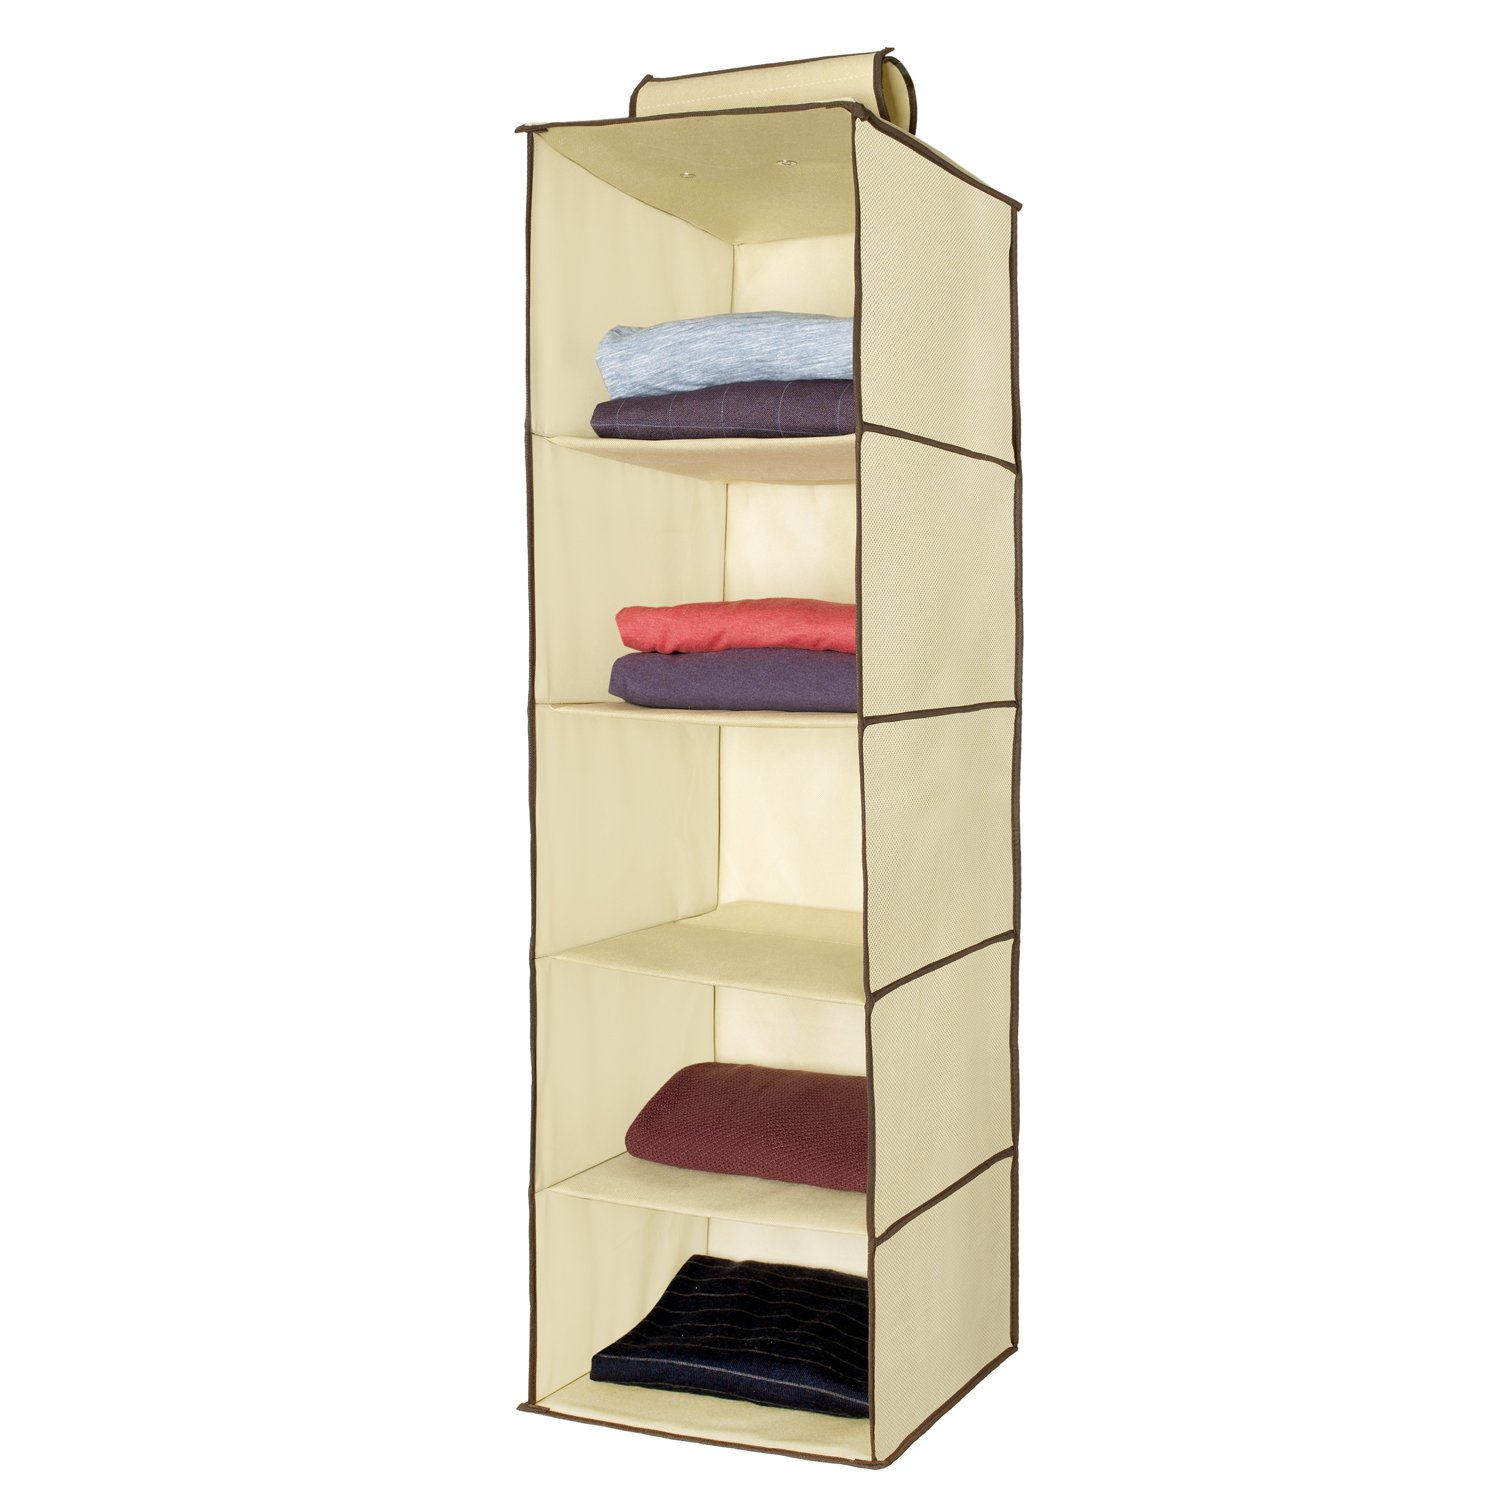 design wardrobe ohperfect guide hanging armoire closet rod top